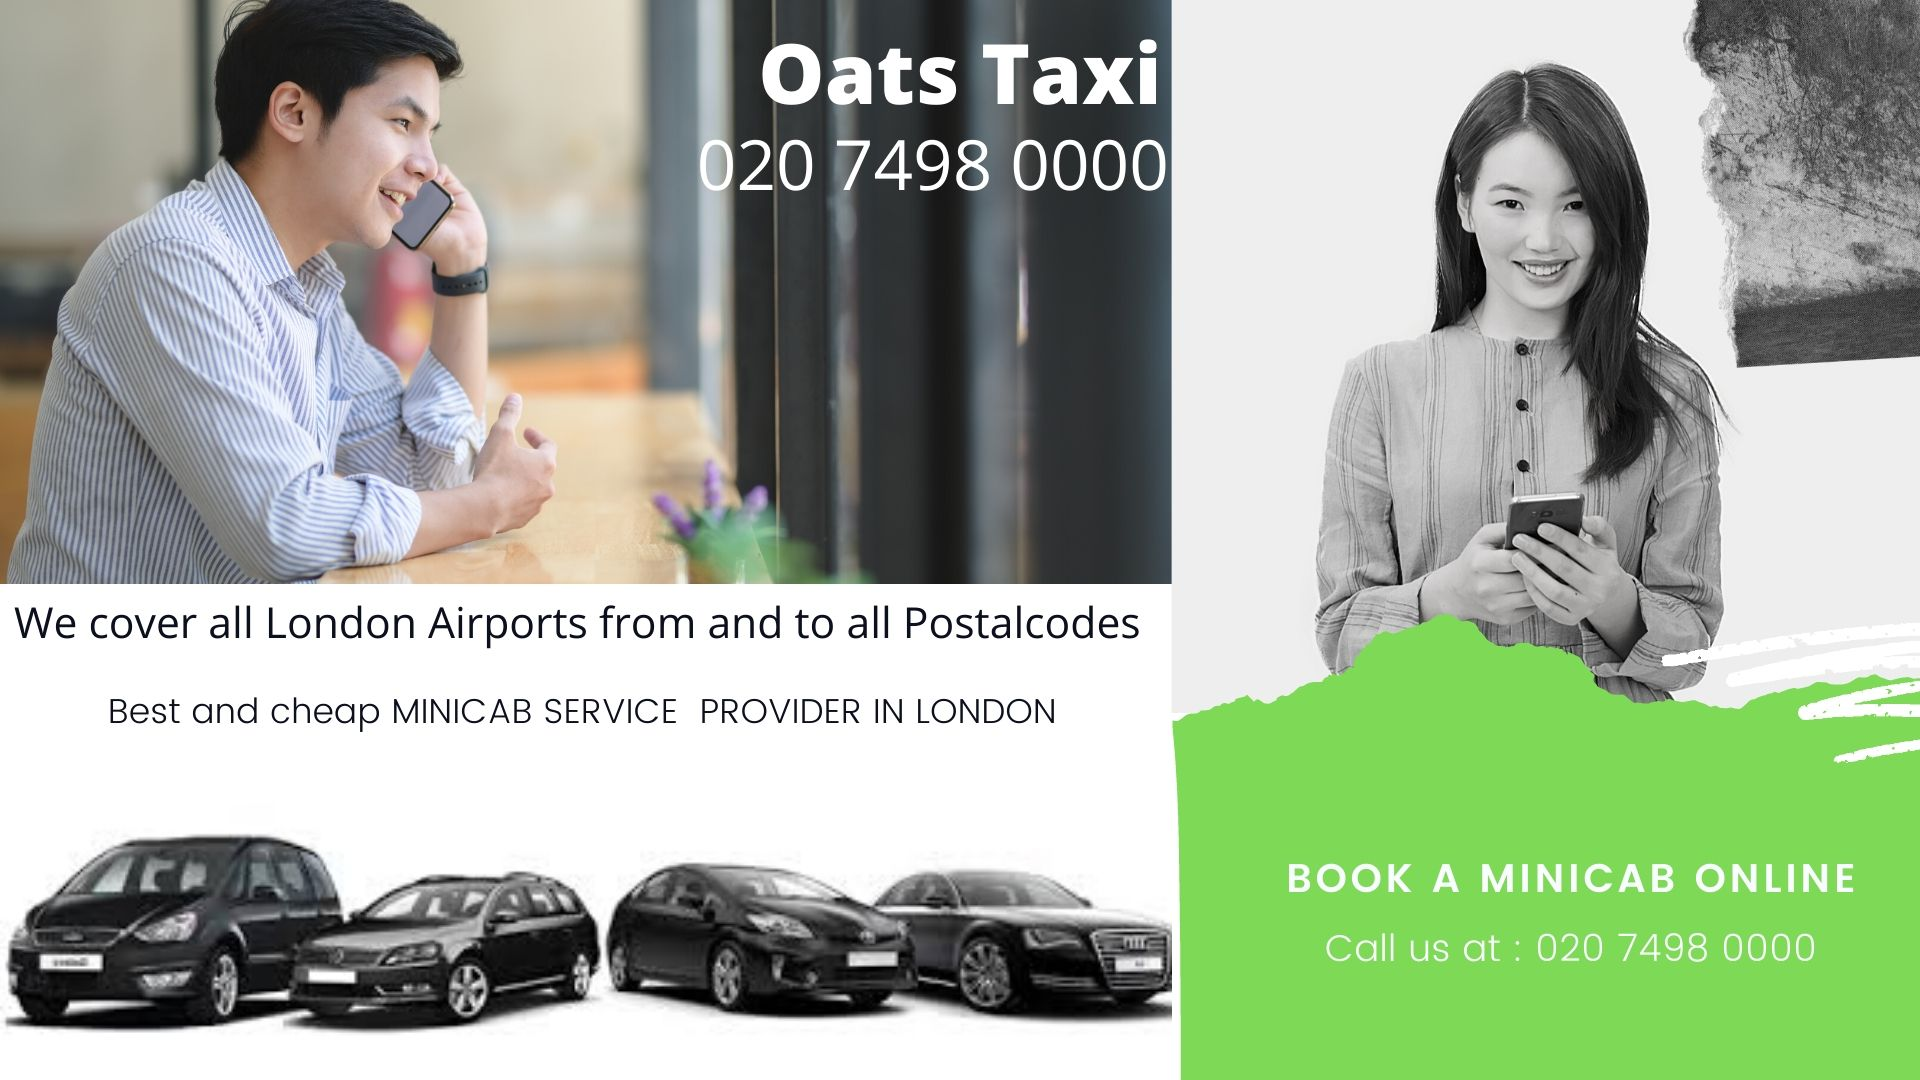 Minicab Near ECCLES ROAD, Battersea SW11, Minicab From Battersea SW11 To Gatwick Airport